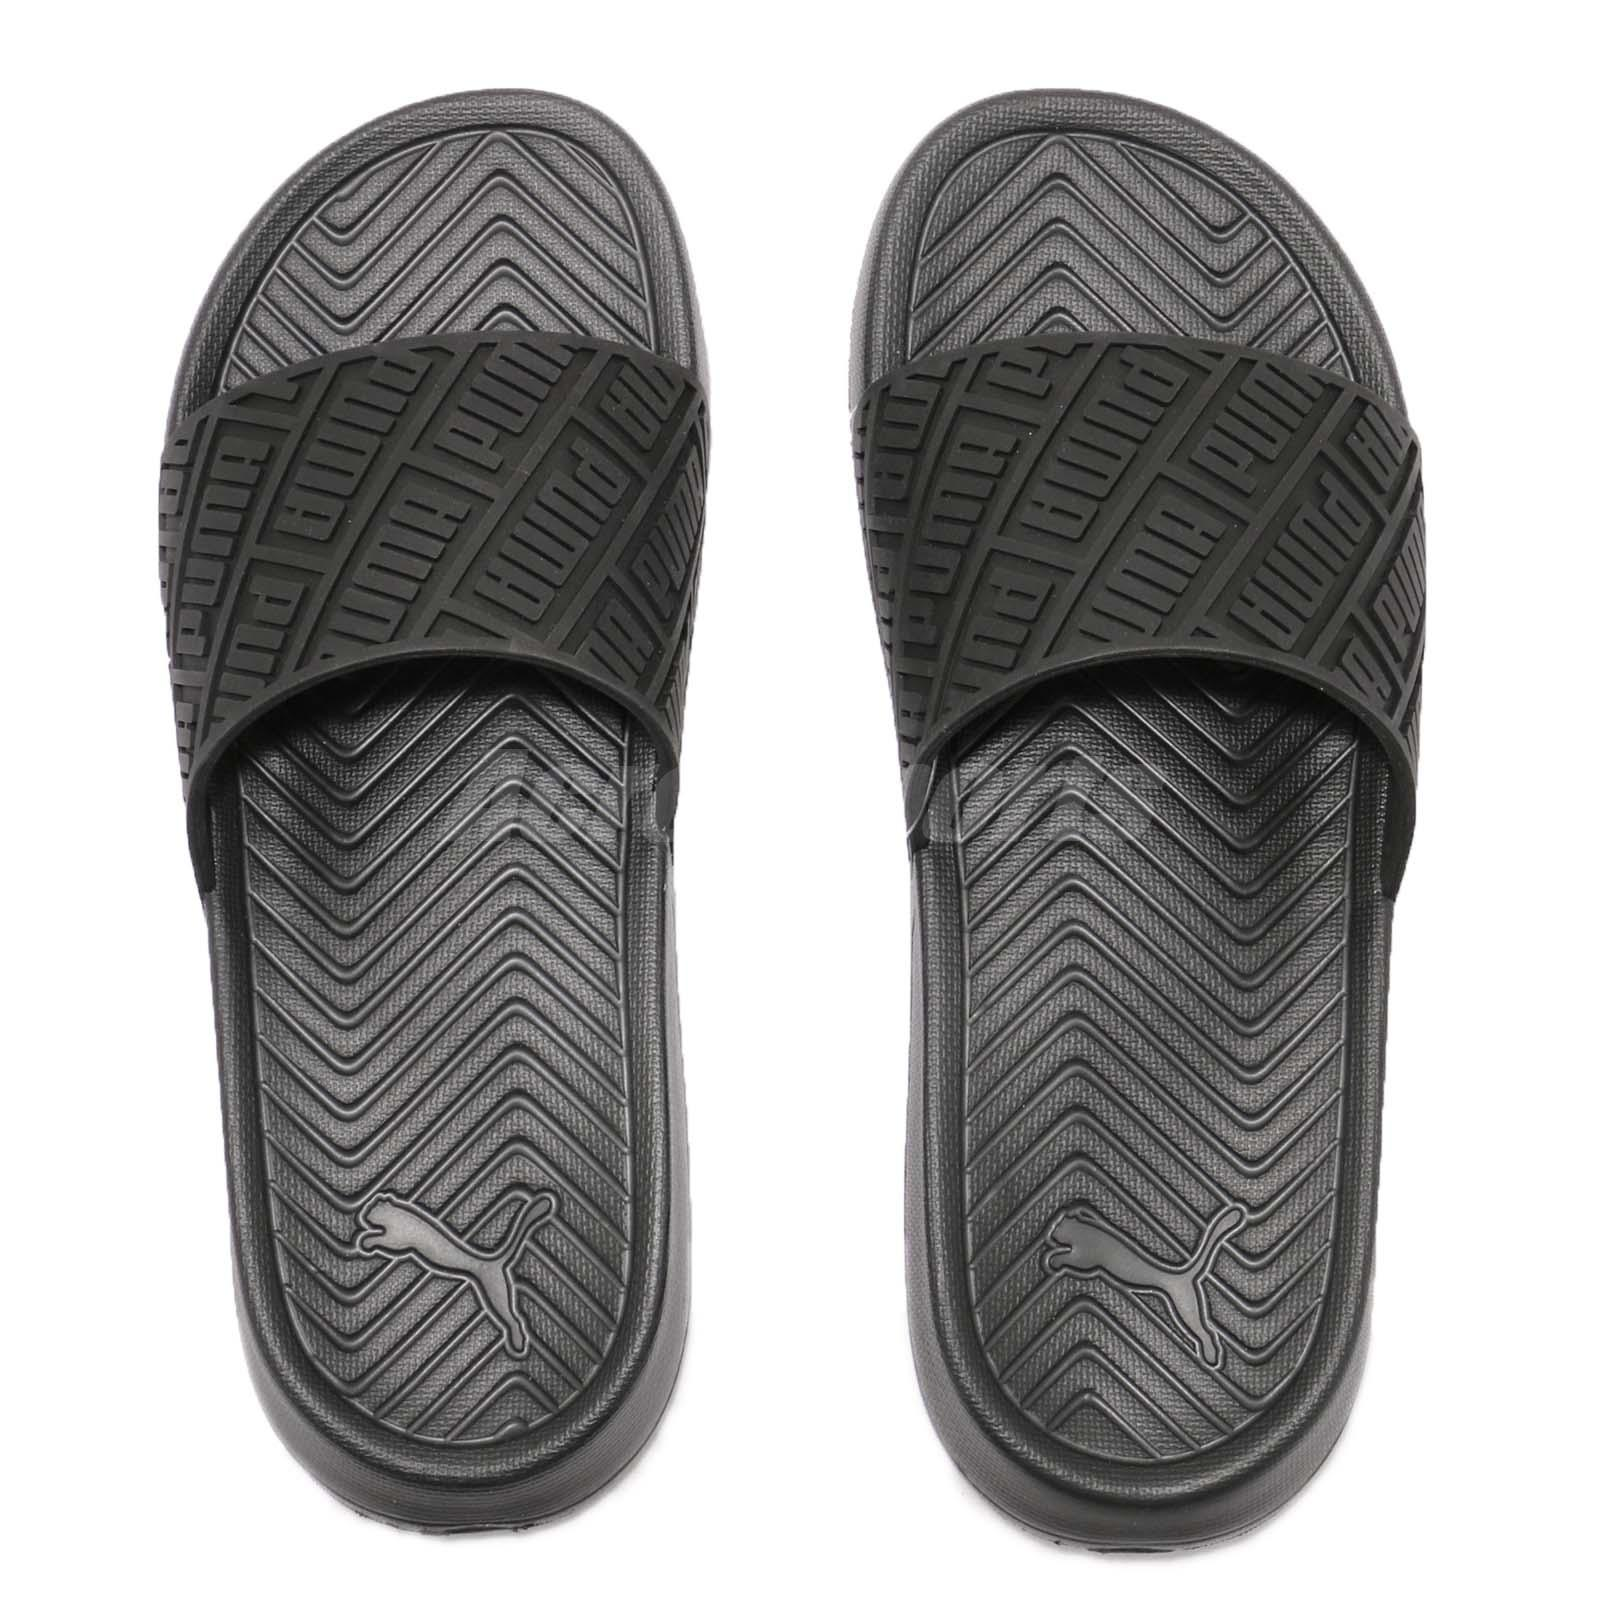 99d24c3326b Puma Popcat Rubber Triple Black Men Sports Sandals Slides Slippers ...